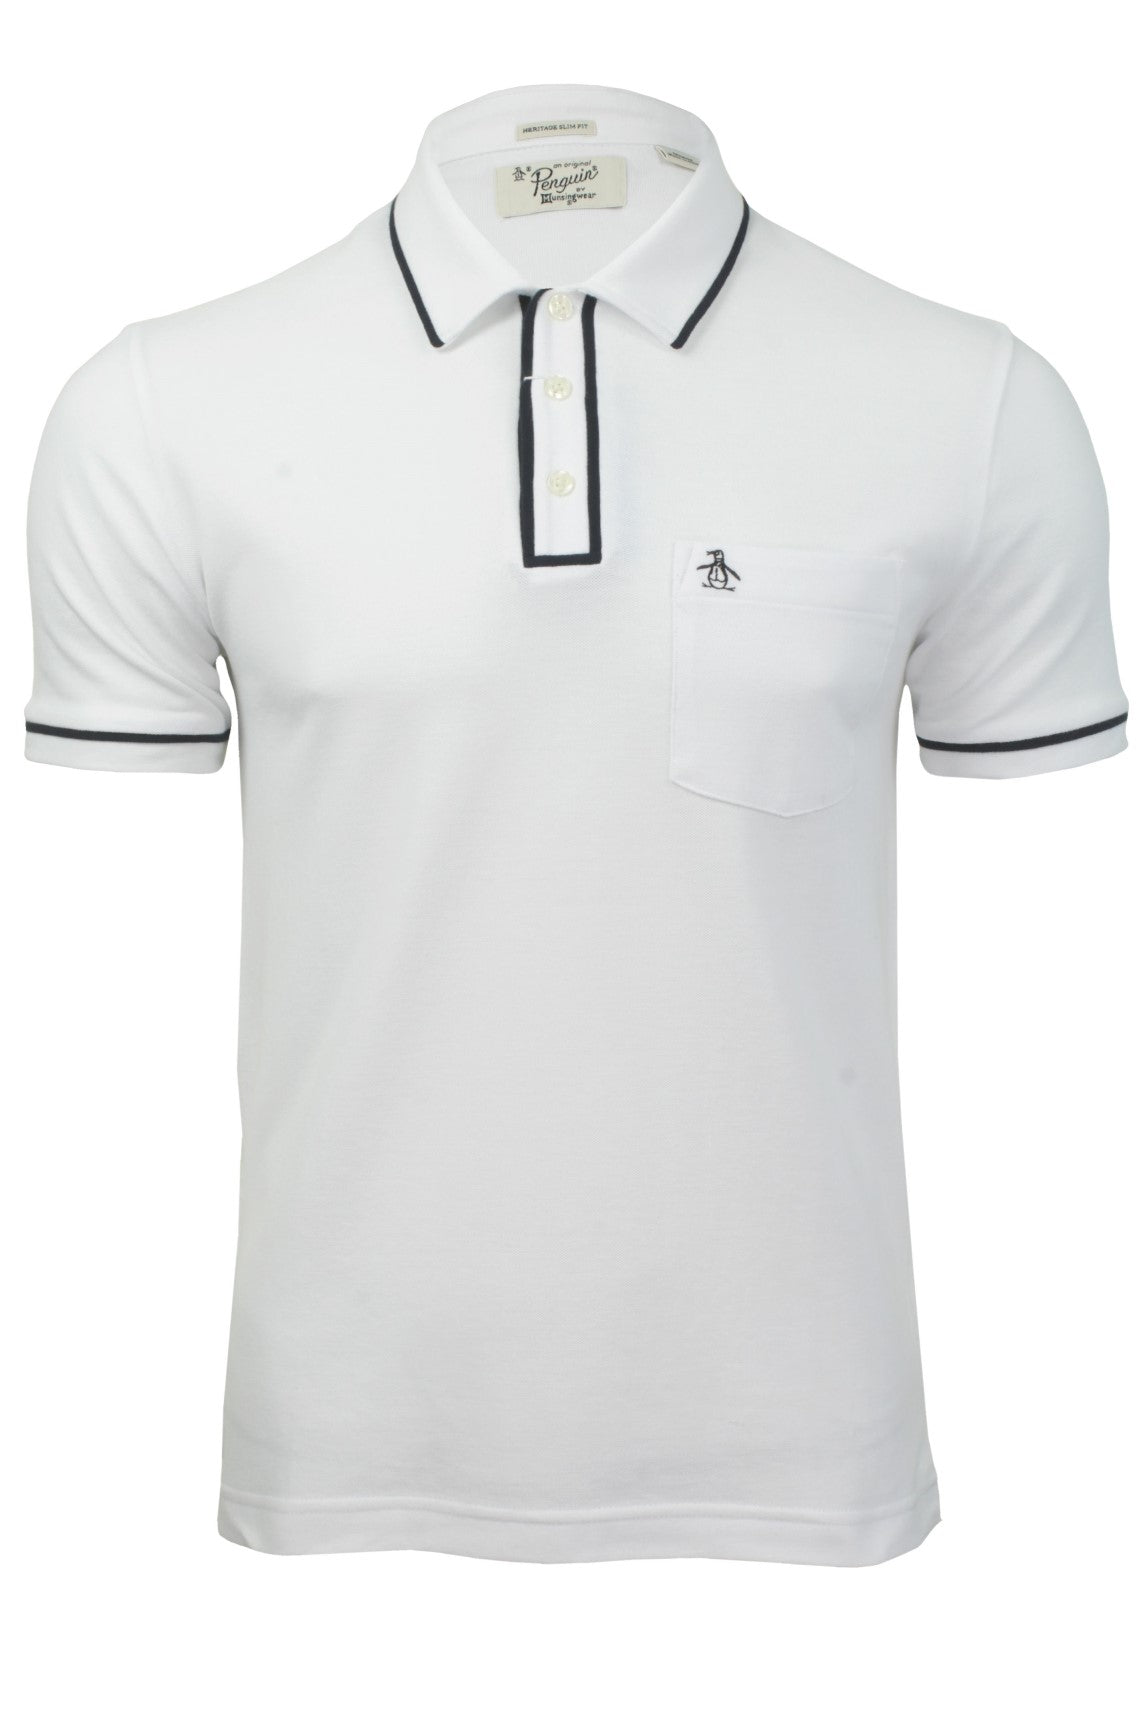 Mens Polo T-Shirt by Original Penguin 'Earl' Short Sleeved_01_Opkf3204_Bright White/ Sapphire